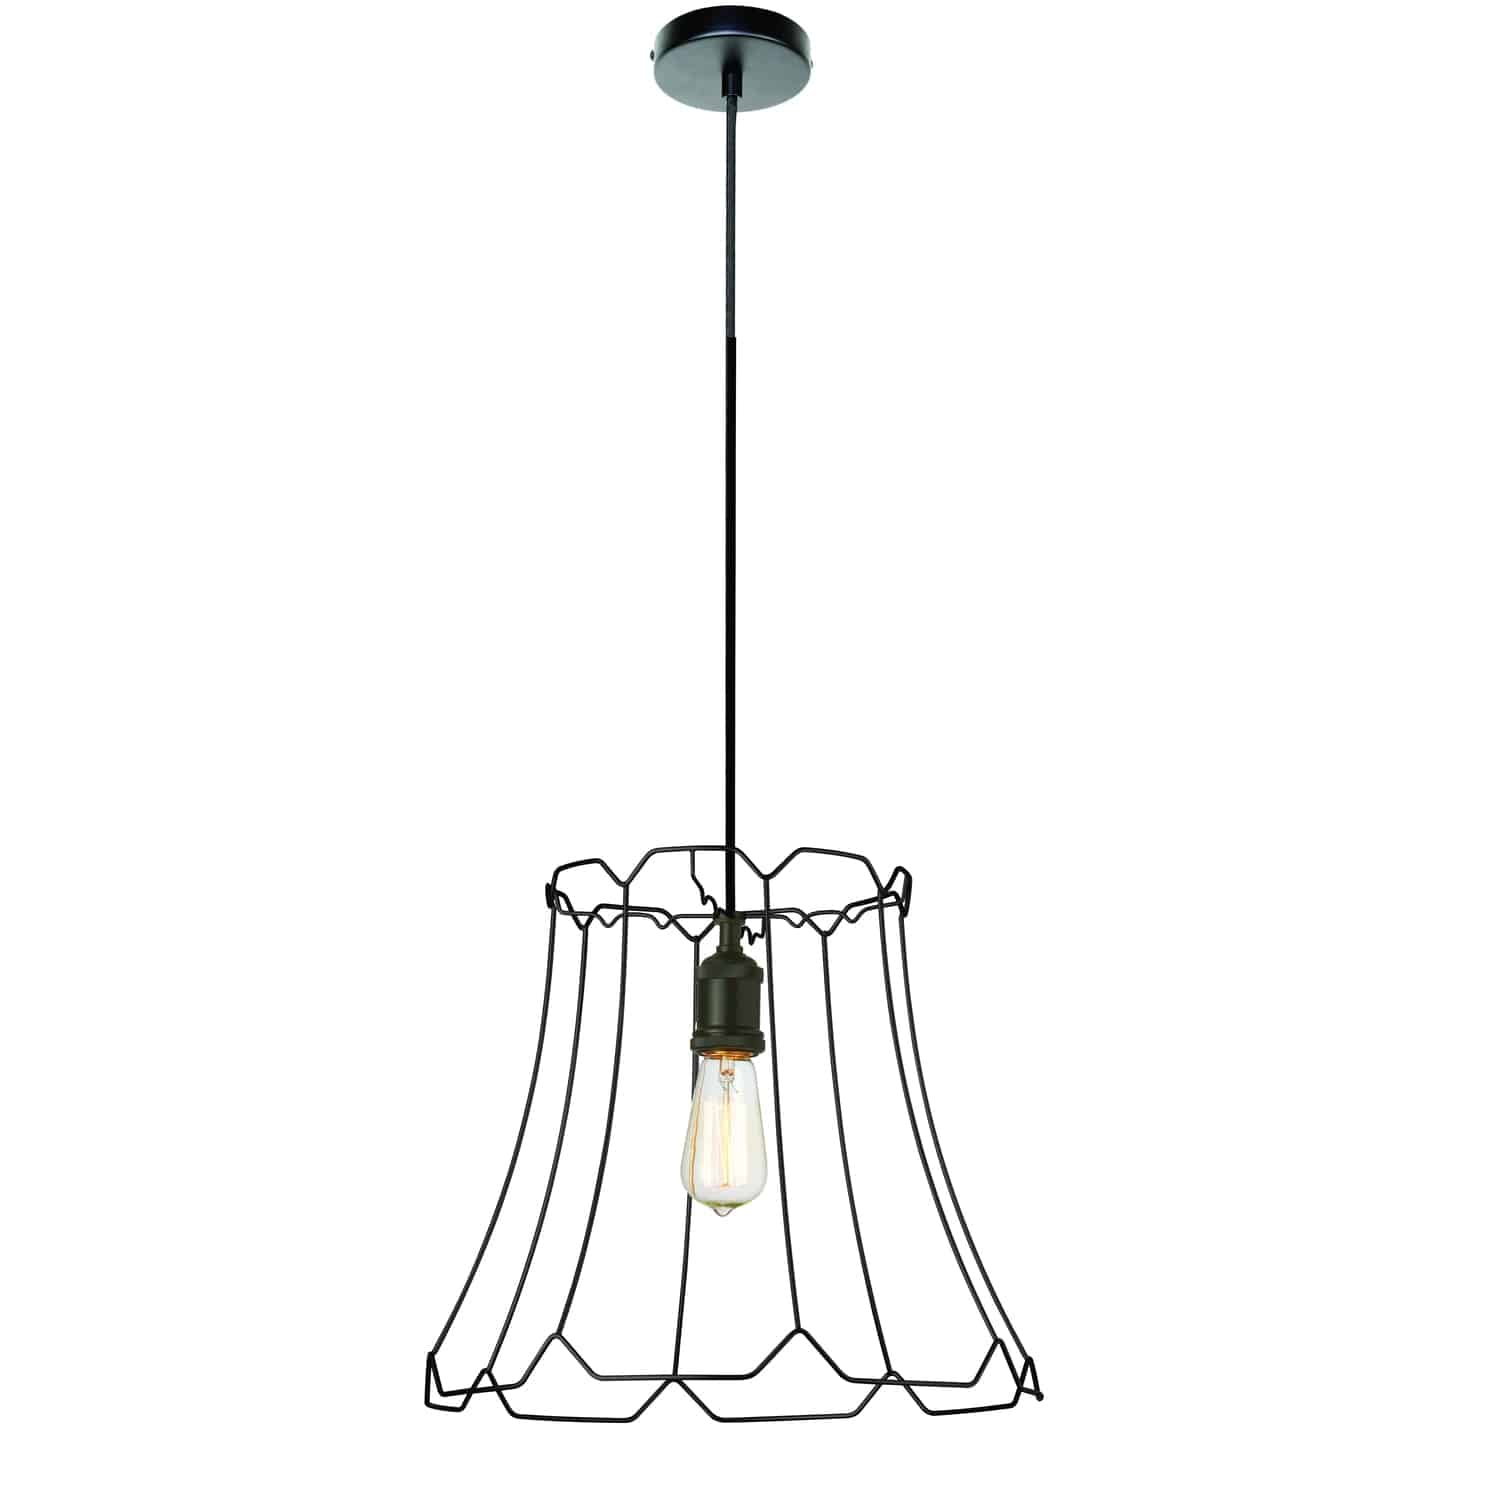 1 Light Metal Framed Pendant, Medium Matte Black Finish